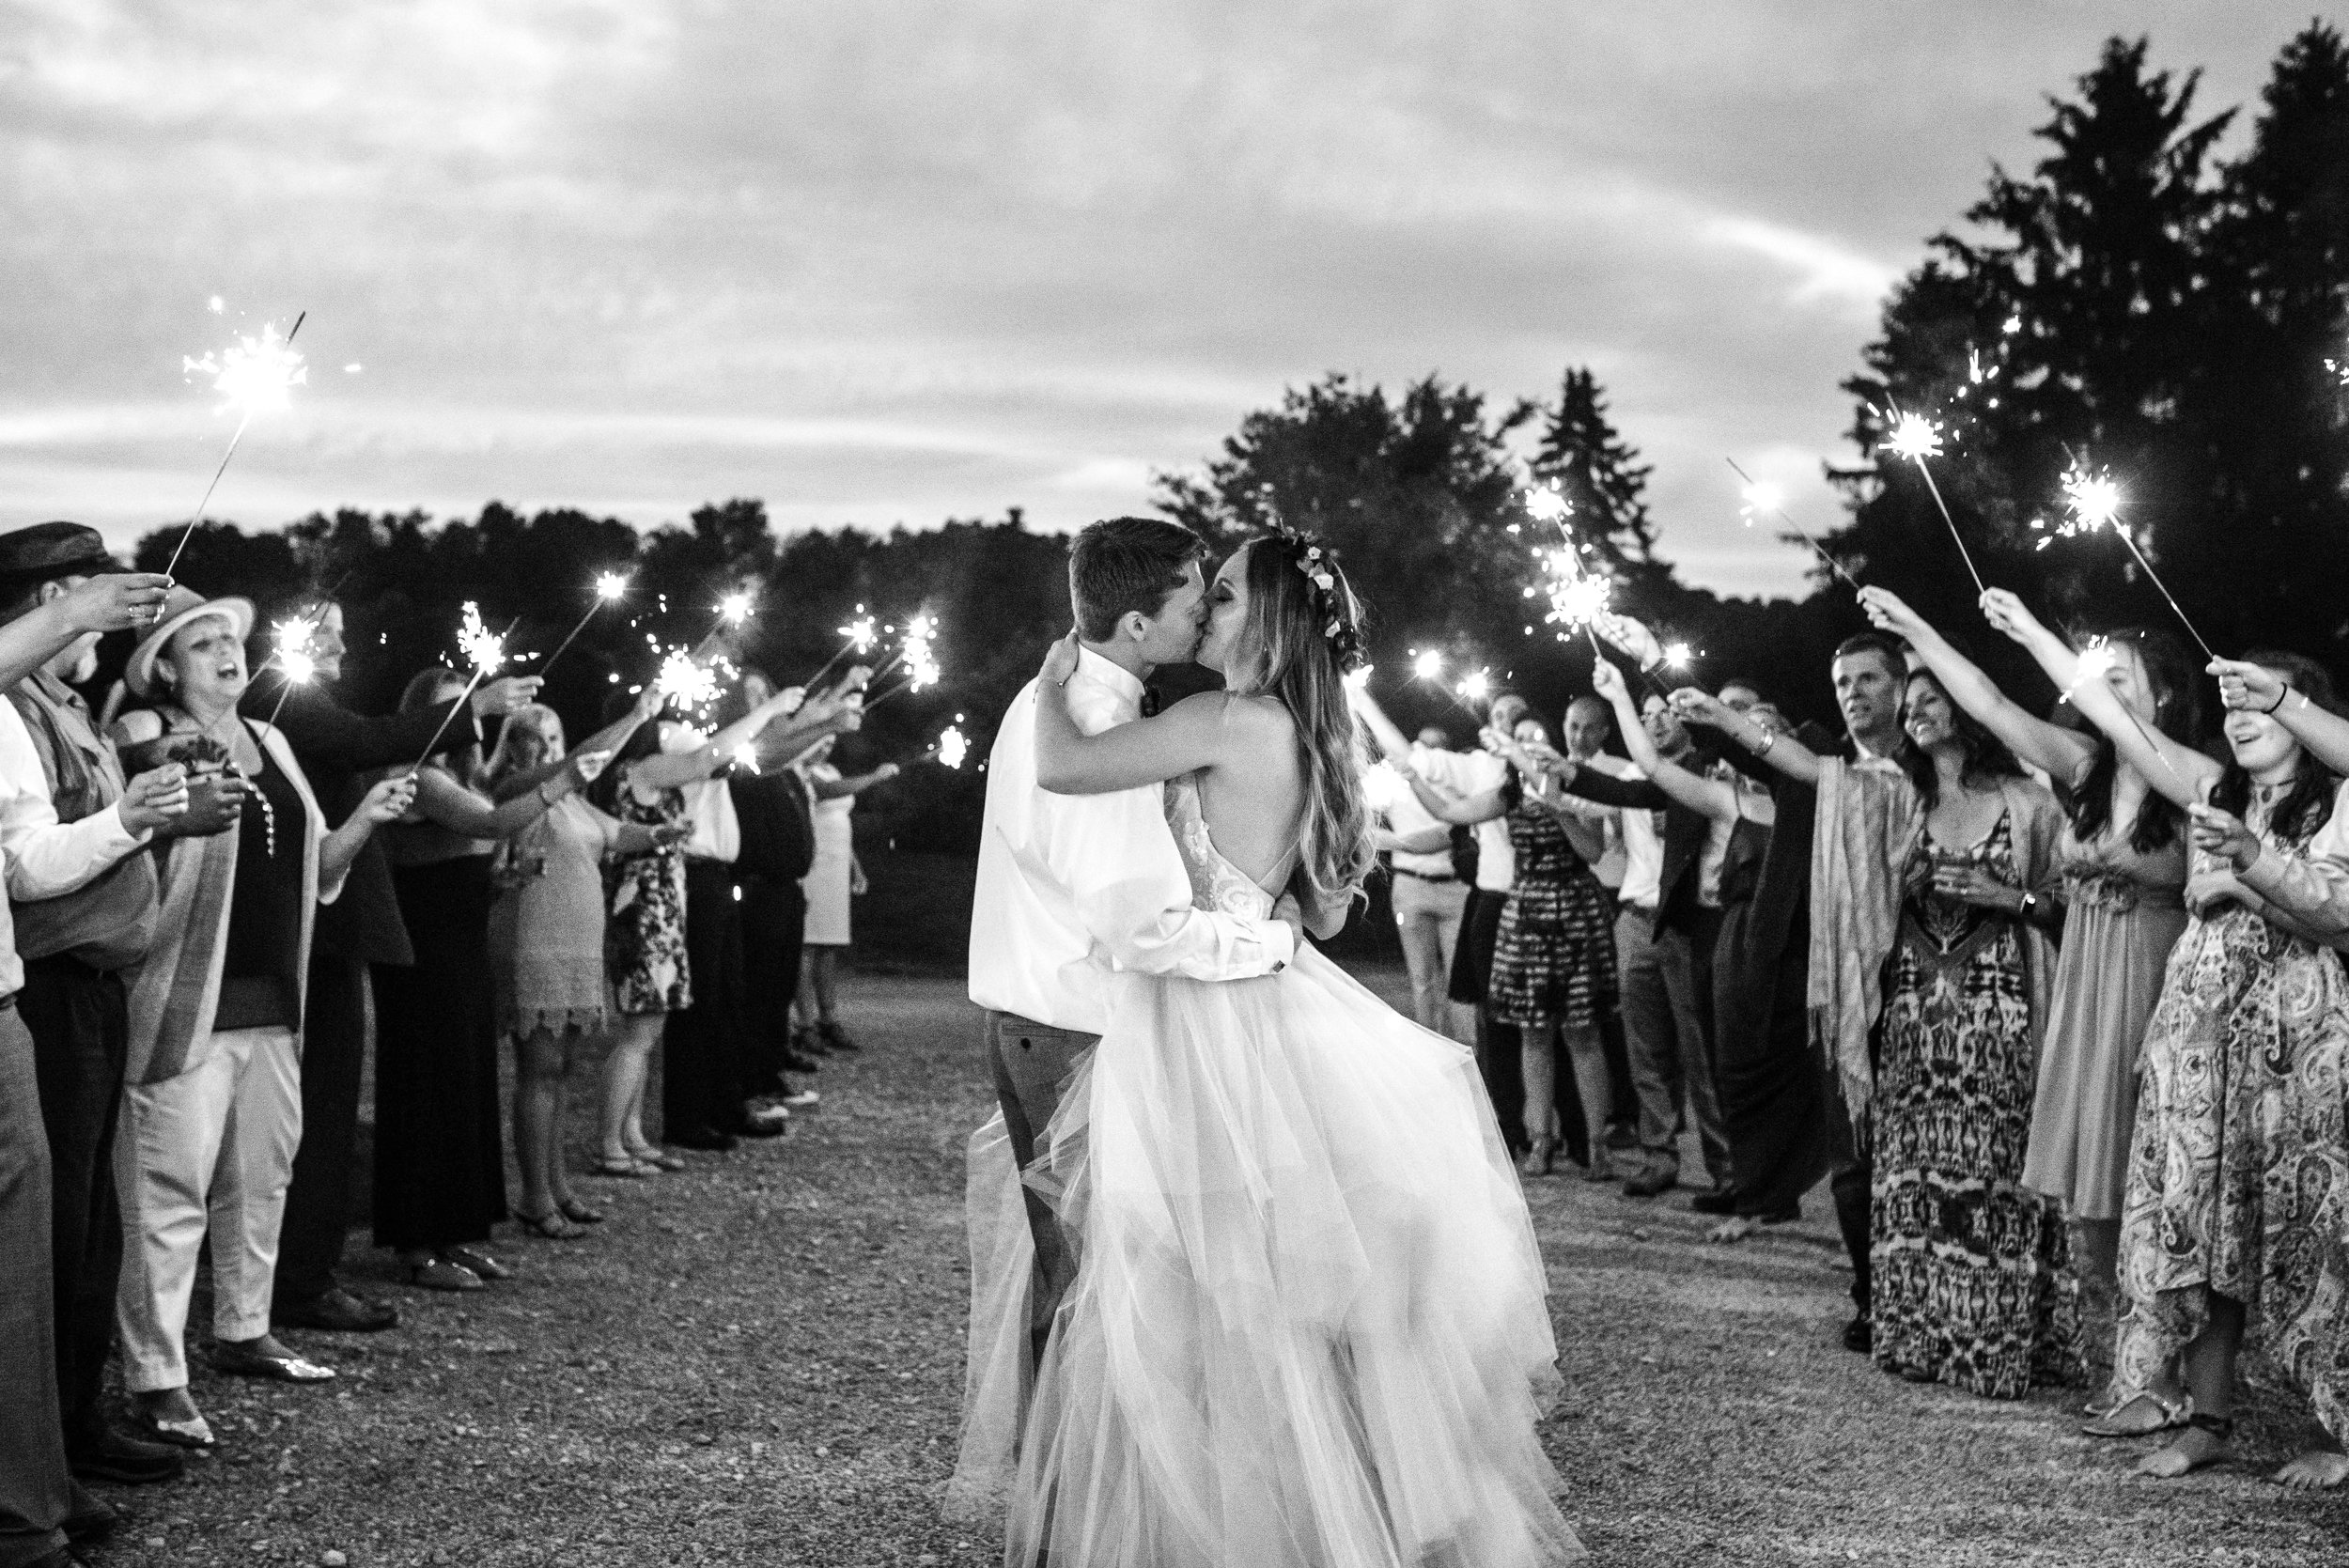 Fourth of July Lingrow Farms Wedding Sparkler Exit